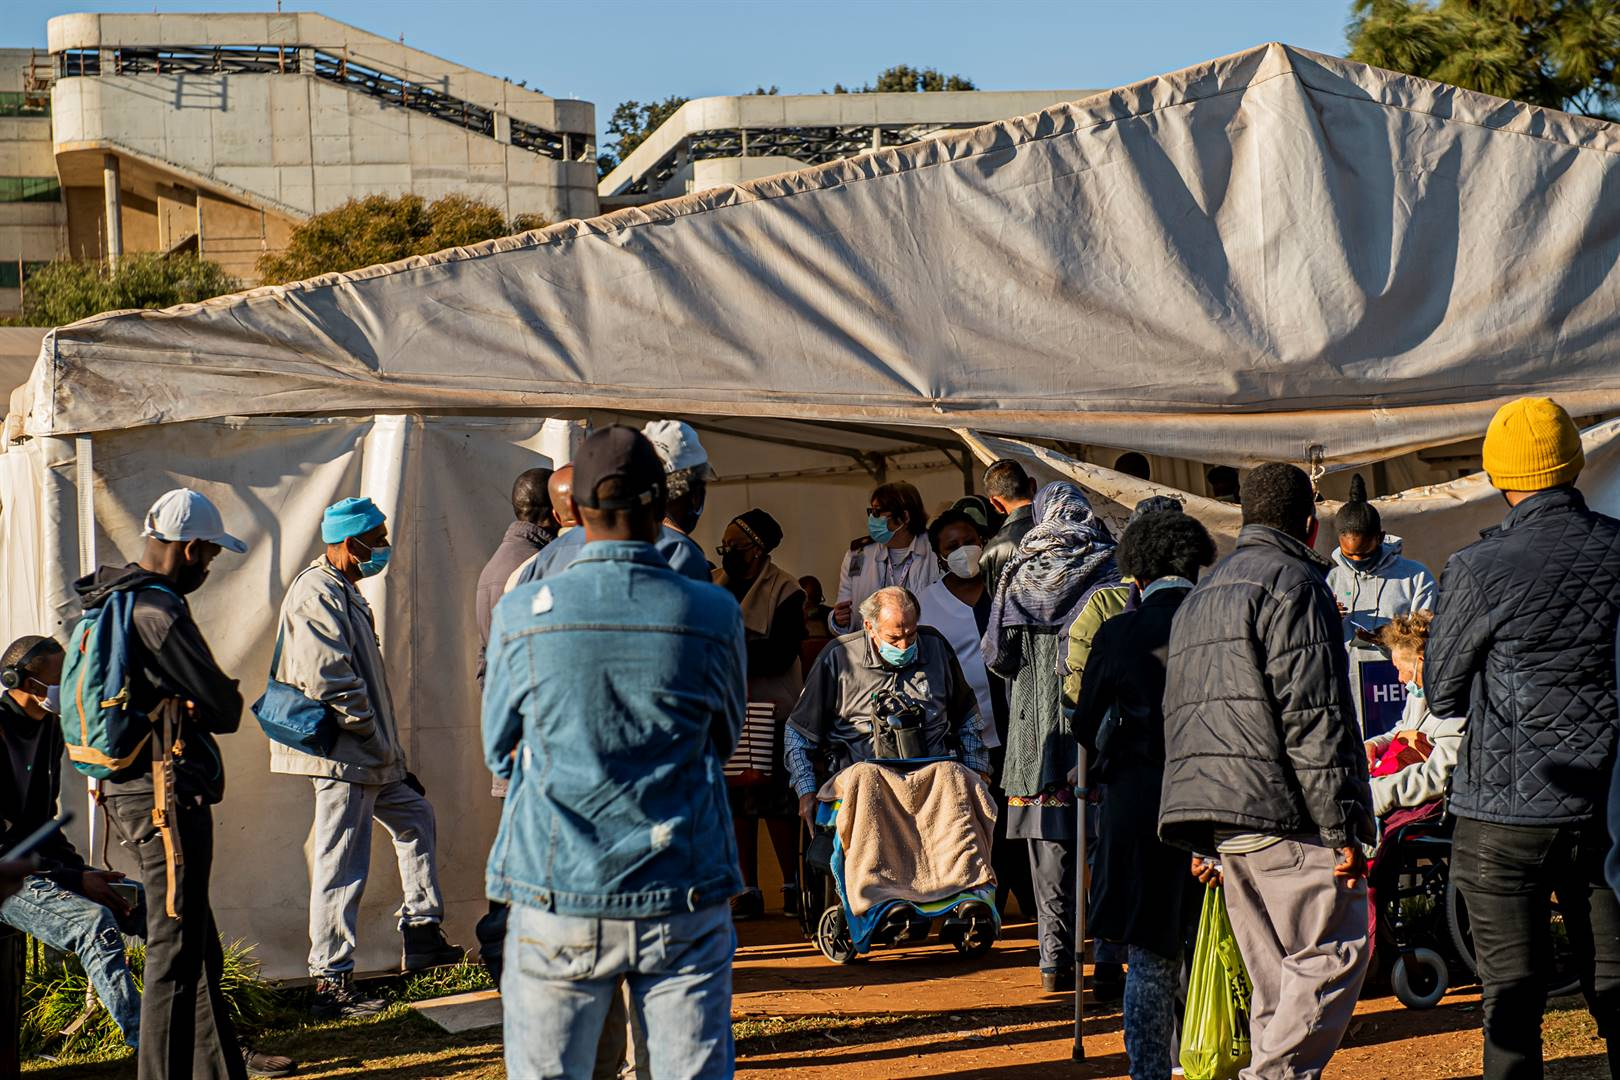 Patients being monitored for Covid-19 symptoms in a dusty tent next to the Helen Joseph State Hospital in Johannesburg before being allowed to enter the hospital. Photo: Deon Raath